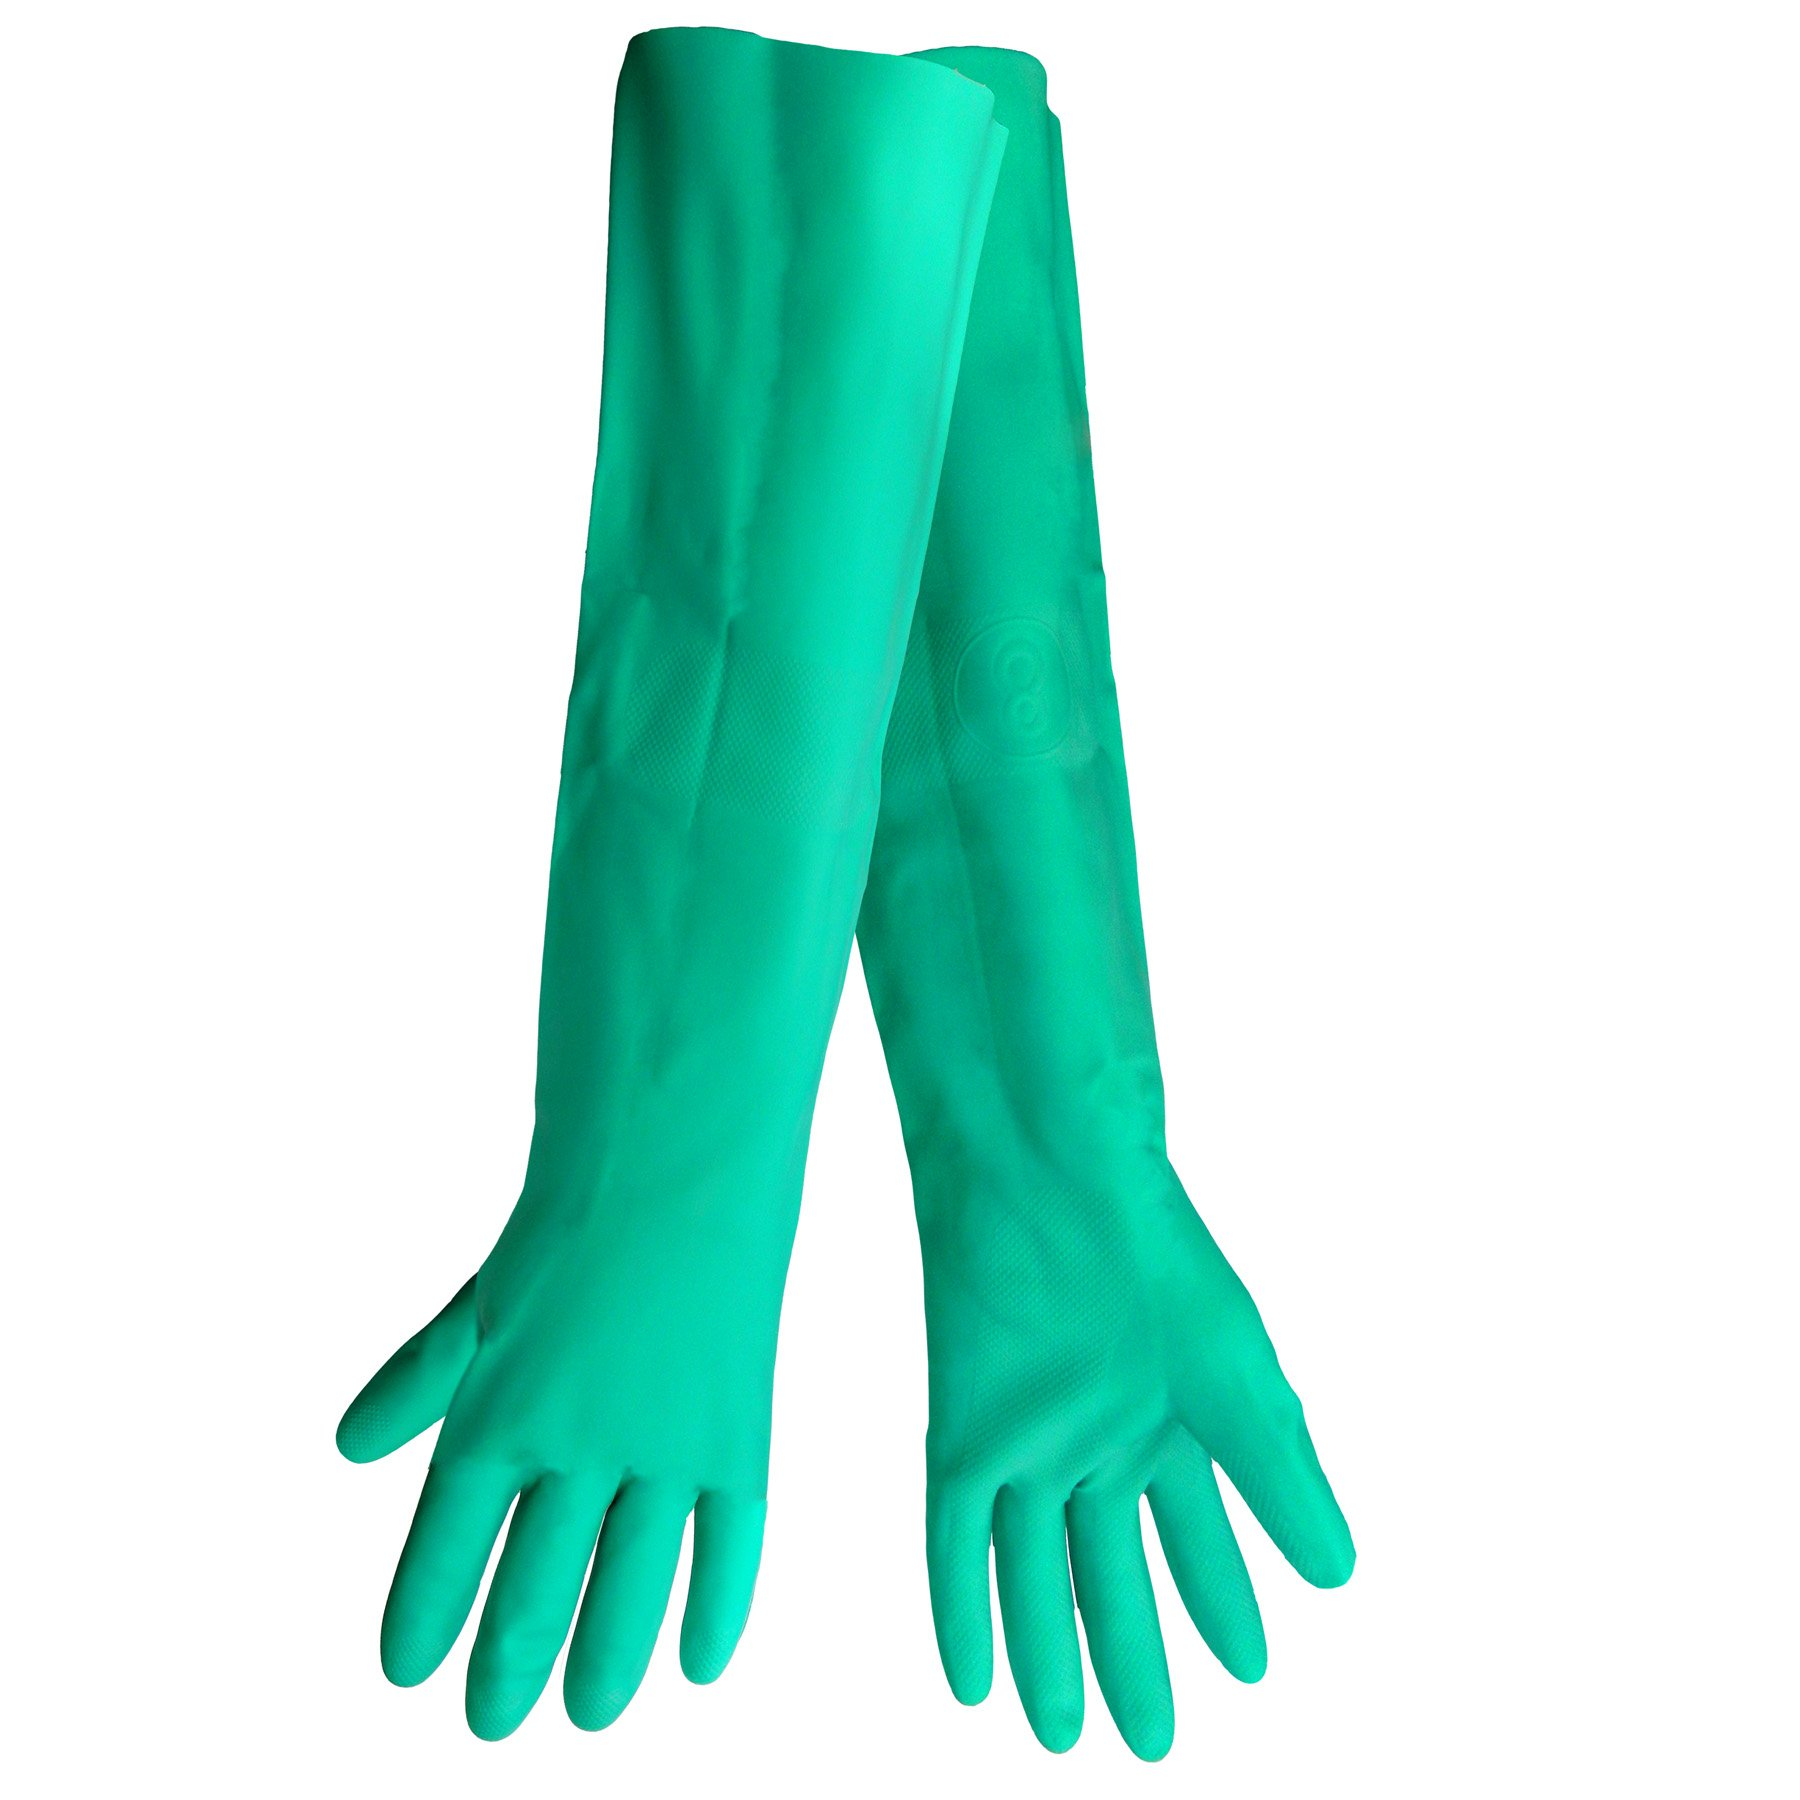 Global Glove 522 Heavyweight Unlined Nitrile Glove, Chemical Resistant, 22 mil Thick, 19'' Length, Extra Large, Green (Case of 72)